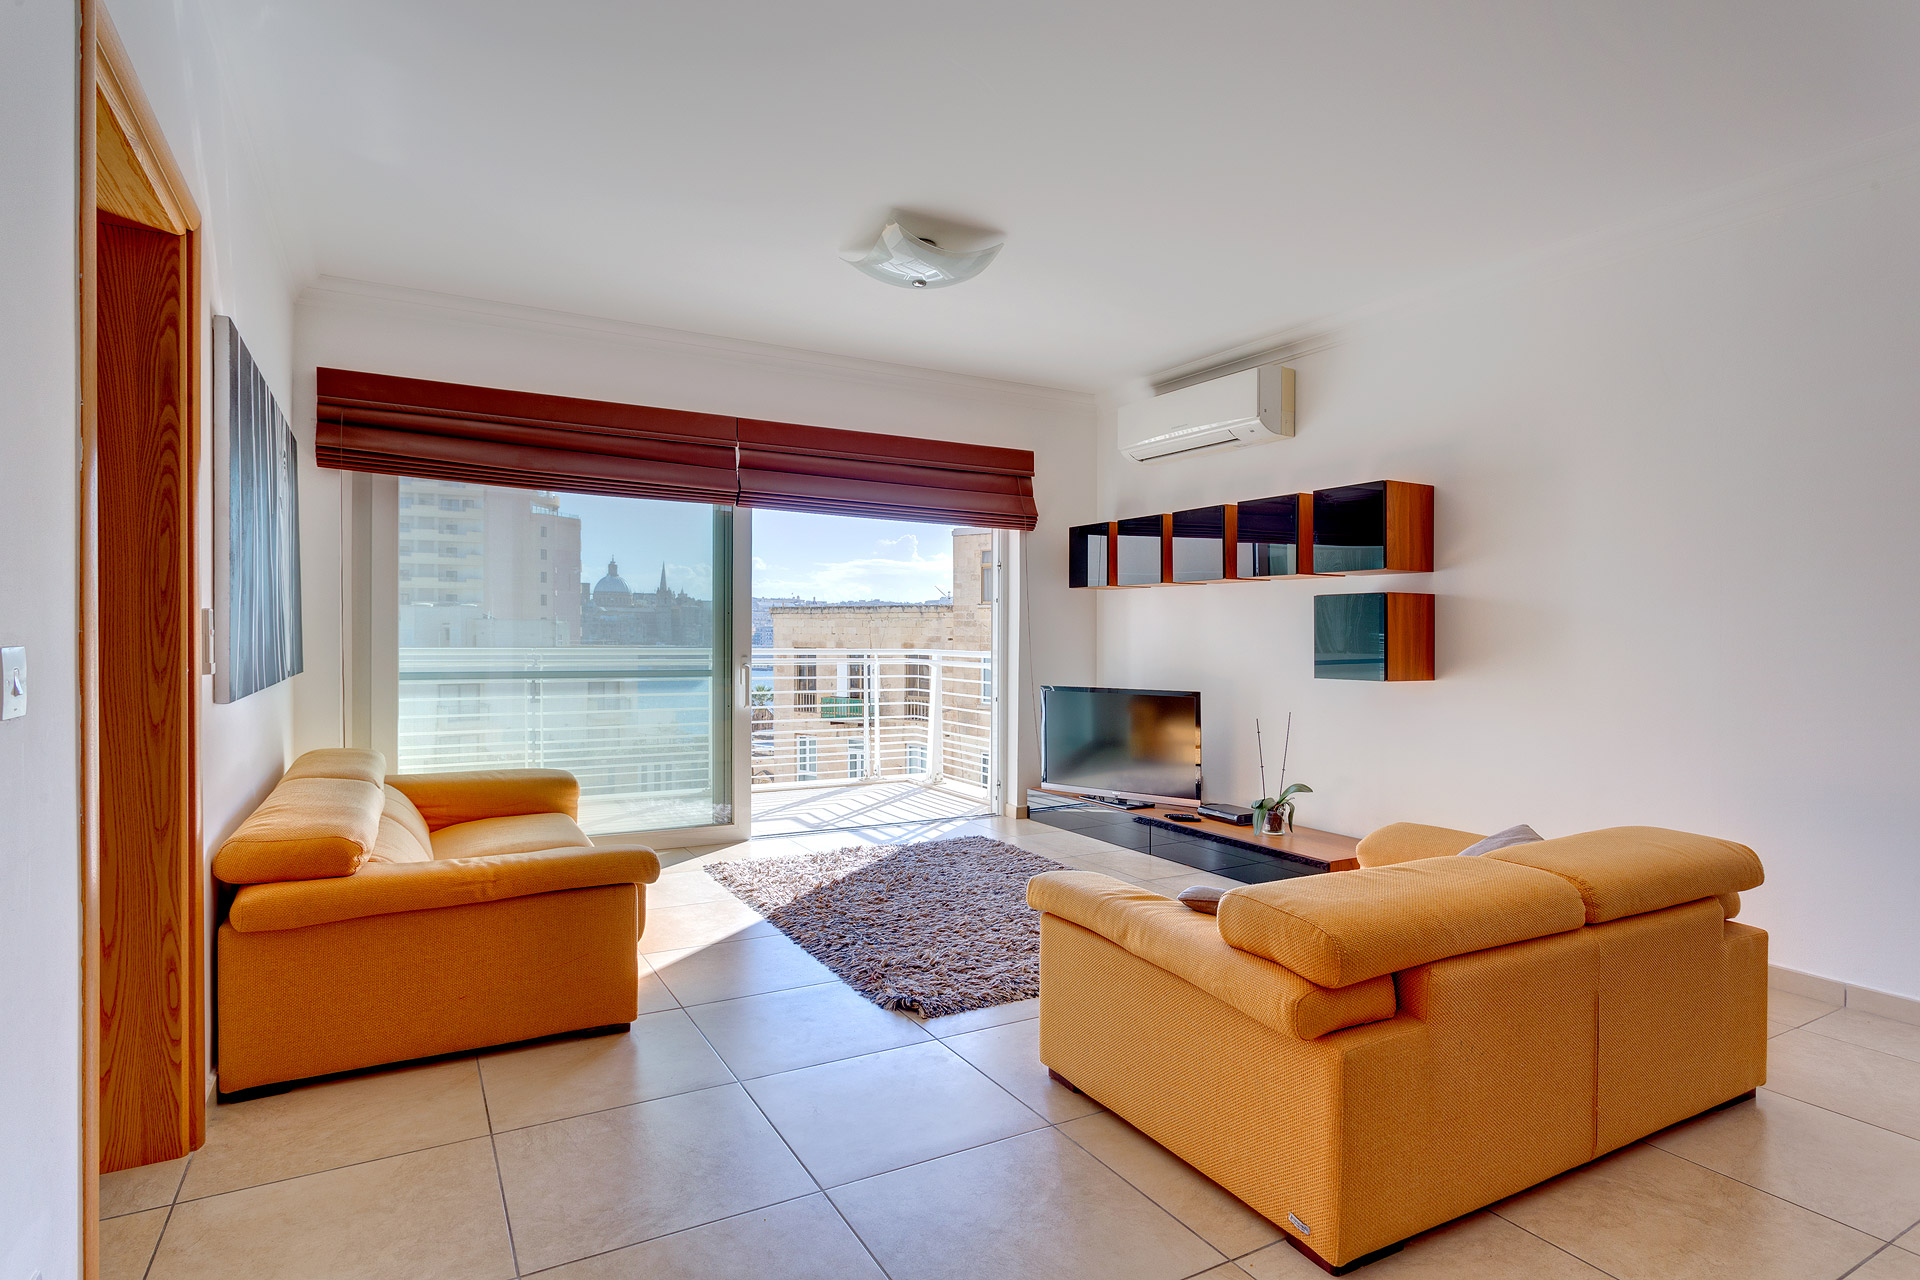 Fabulous 1br apartment in fort cambridge buena vista holidays for One bedroom apartment cambridge